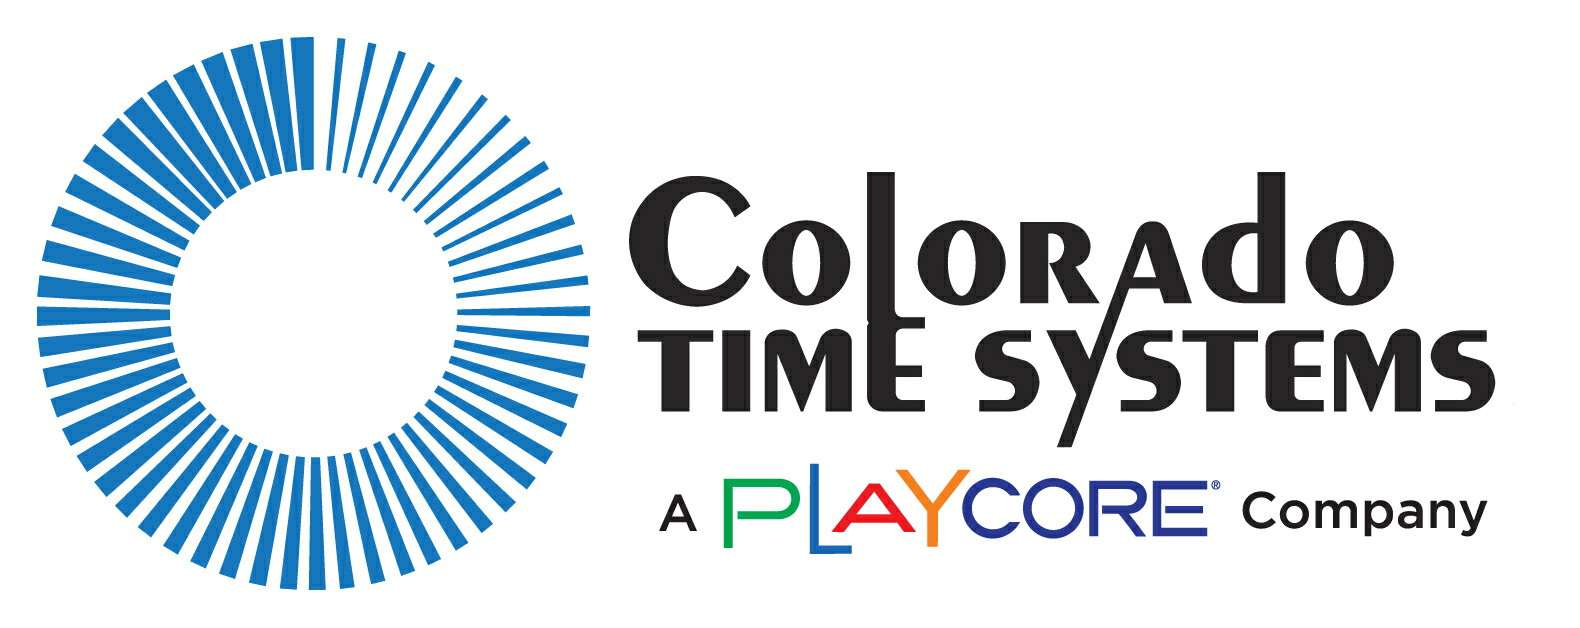 Colorado Time Systems 2012